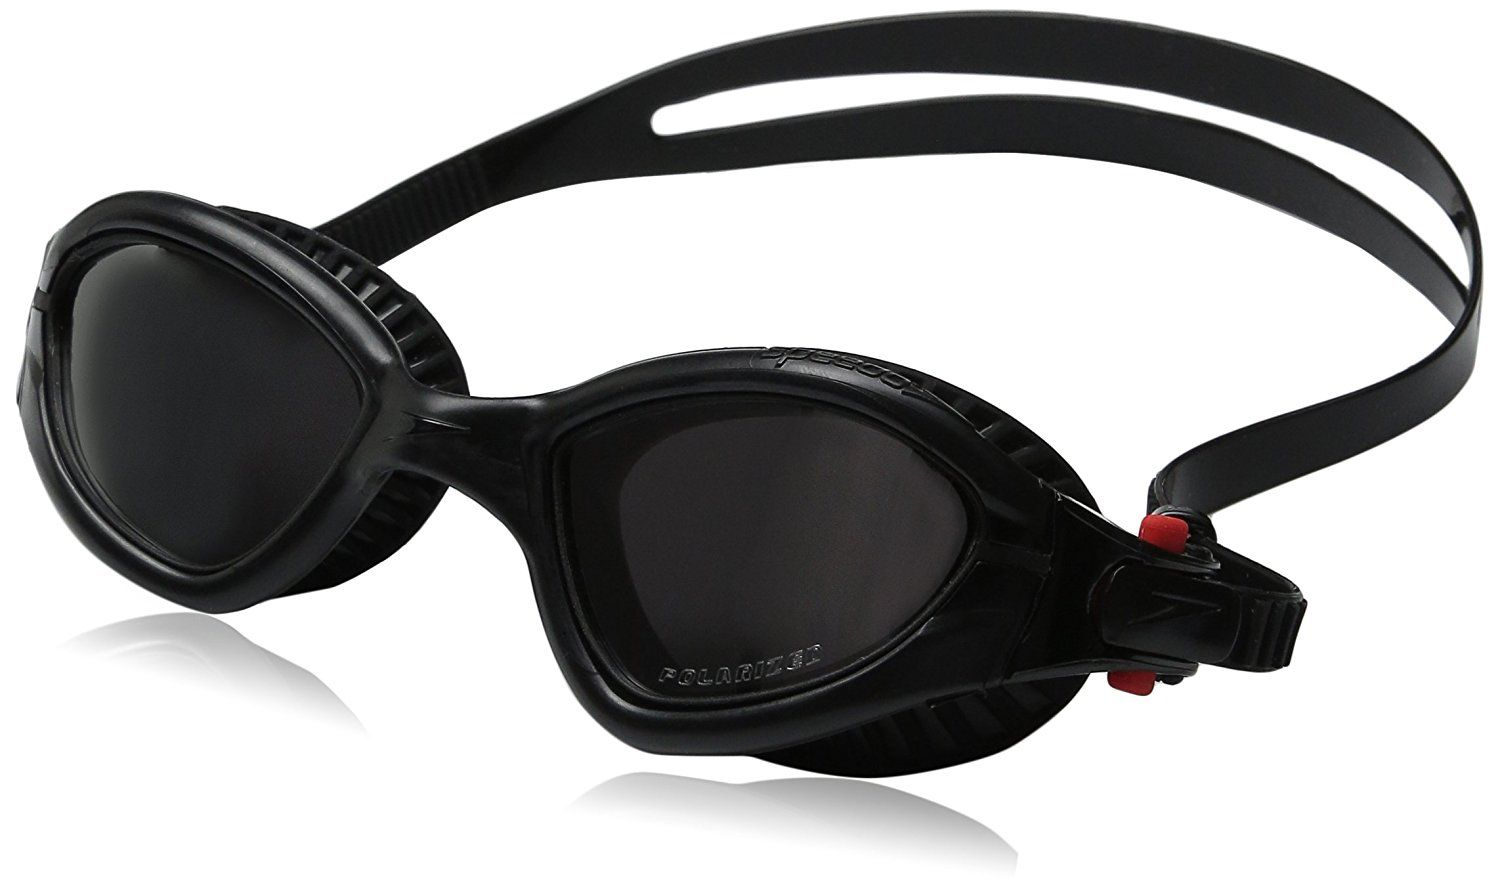 93373d323b78 Best for Open Water  Speedo MDR 2.4 Polarized Goggles